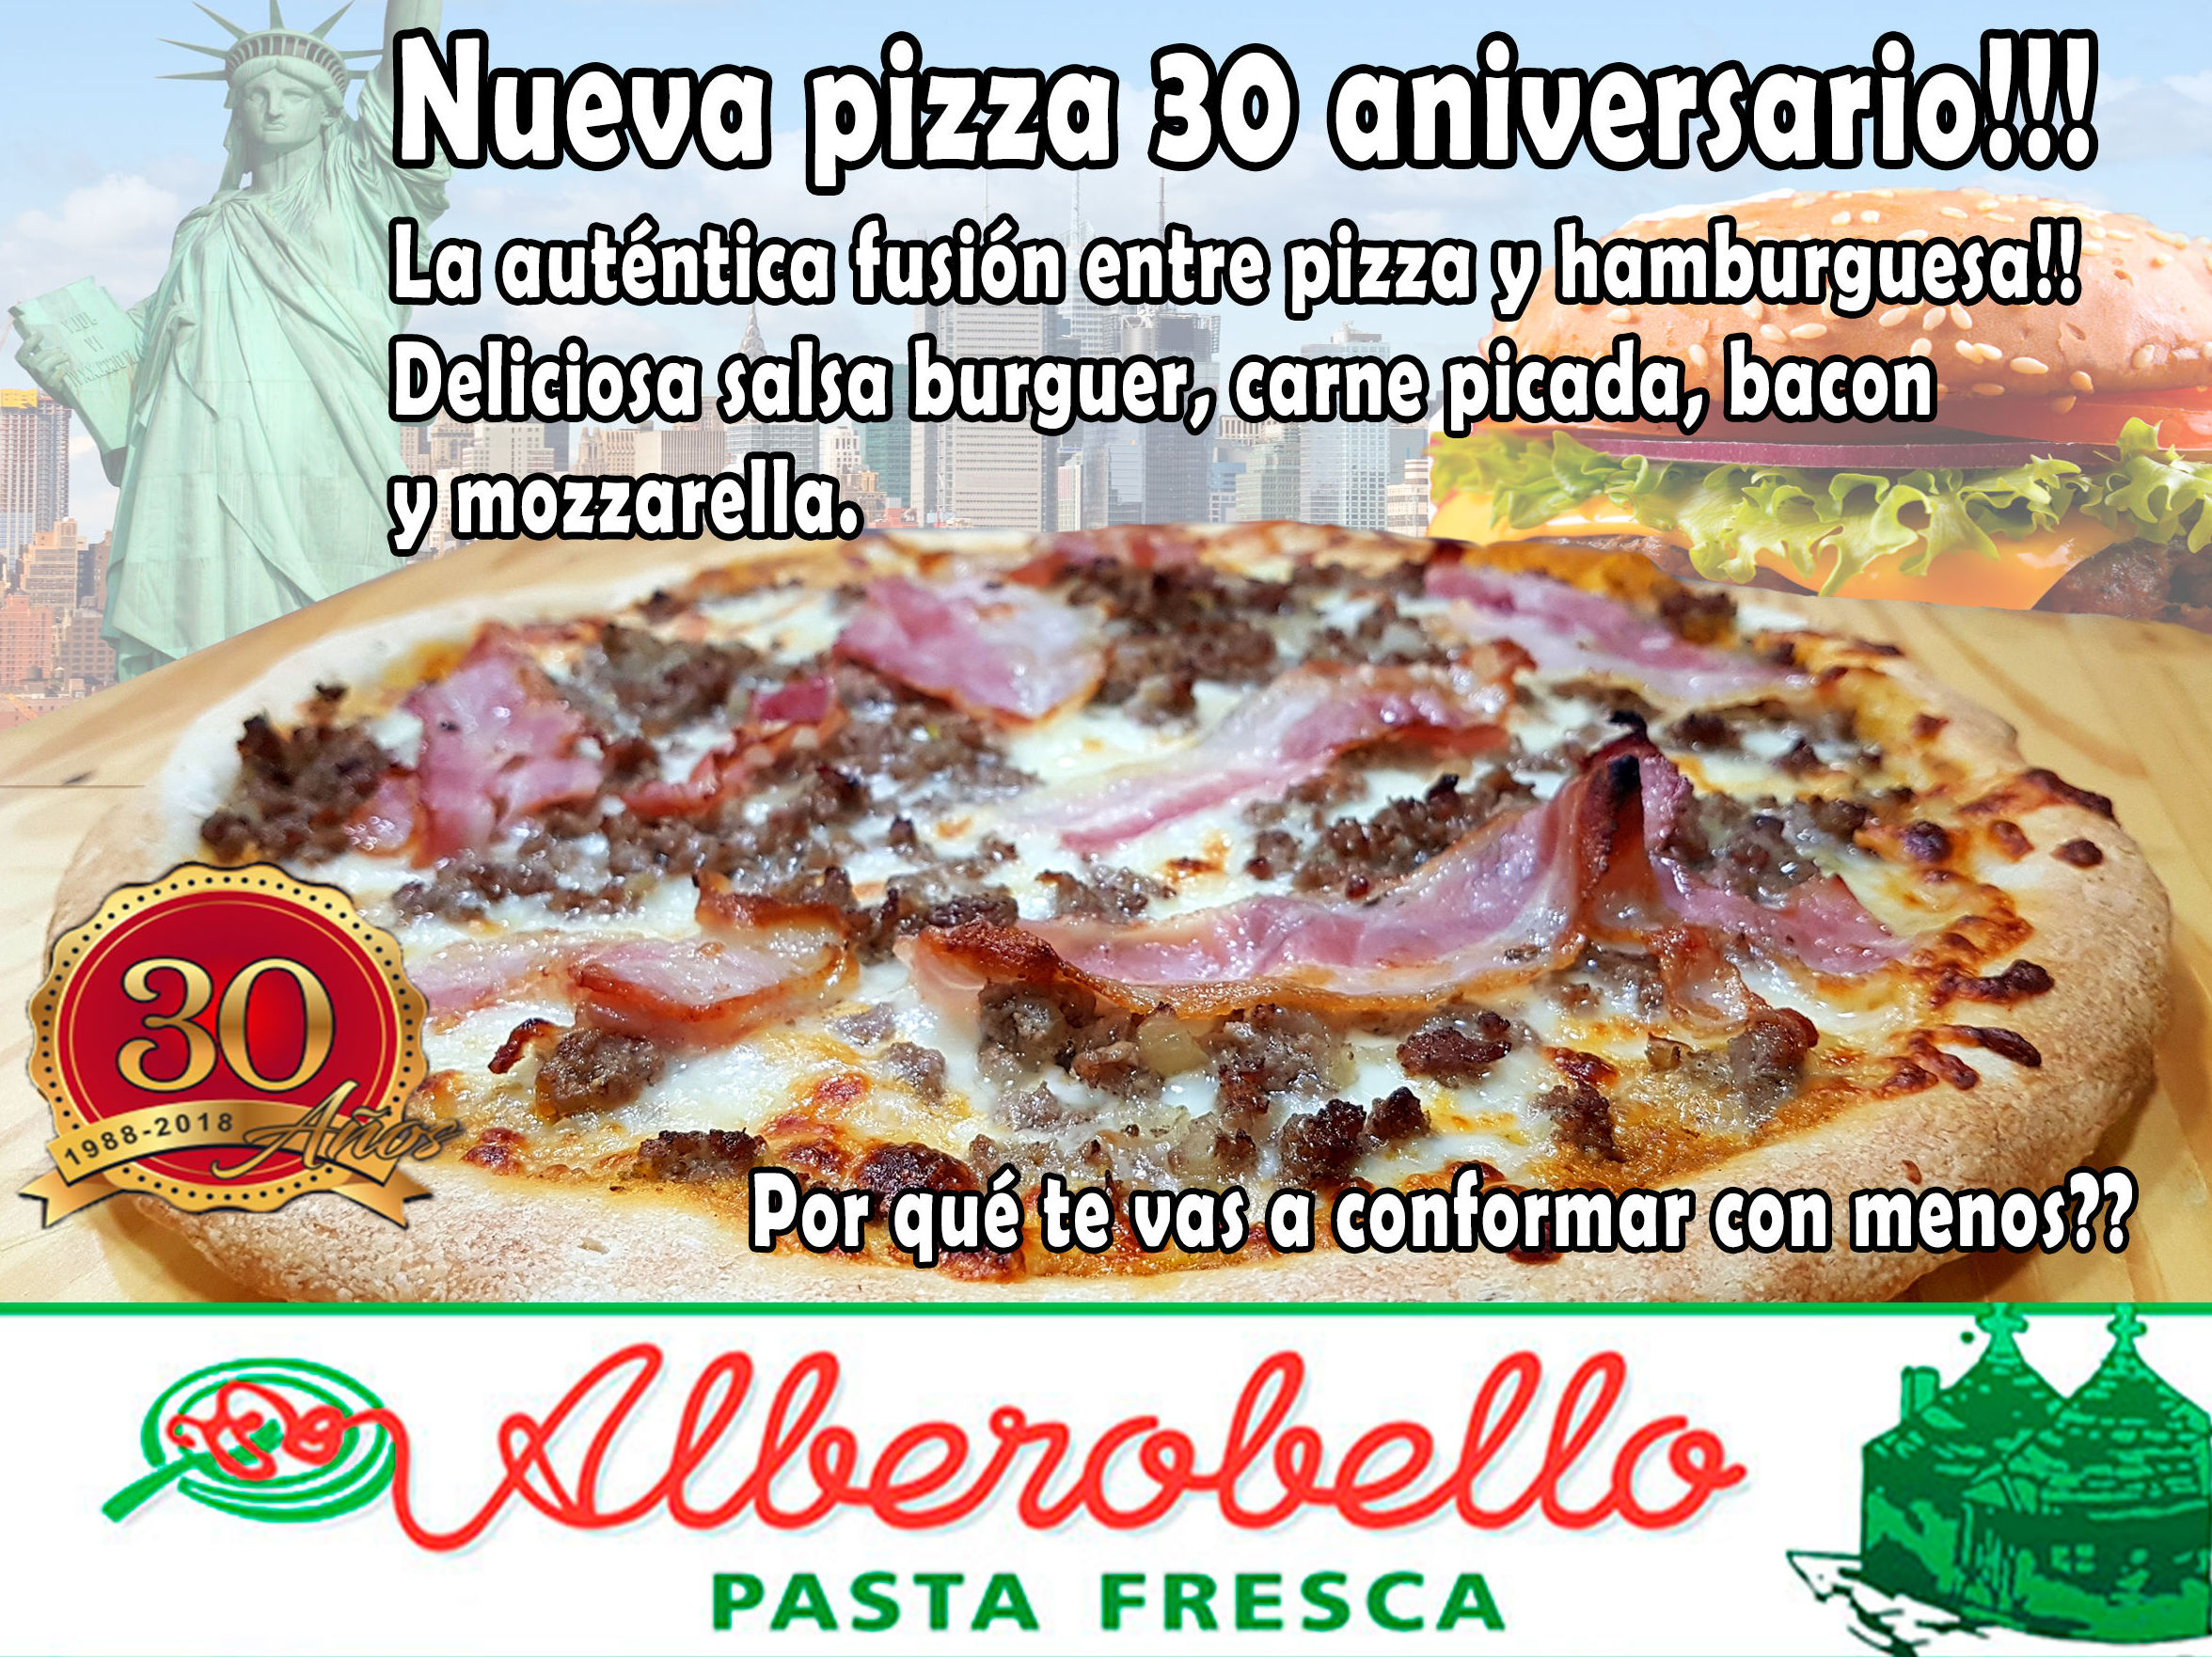 Pizza 30 aniversario